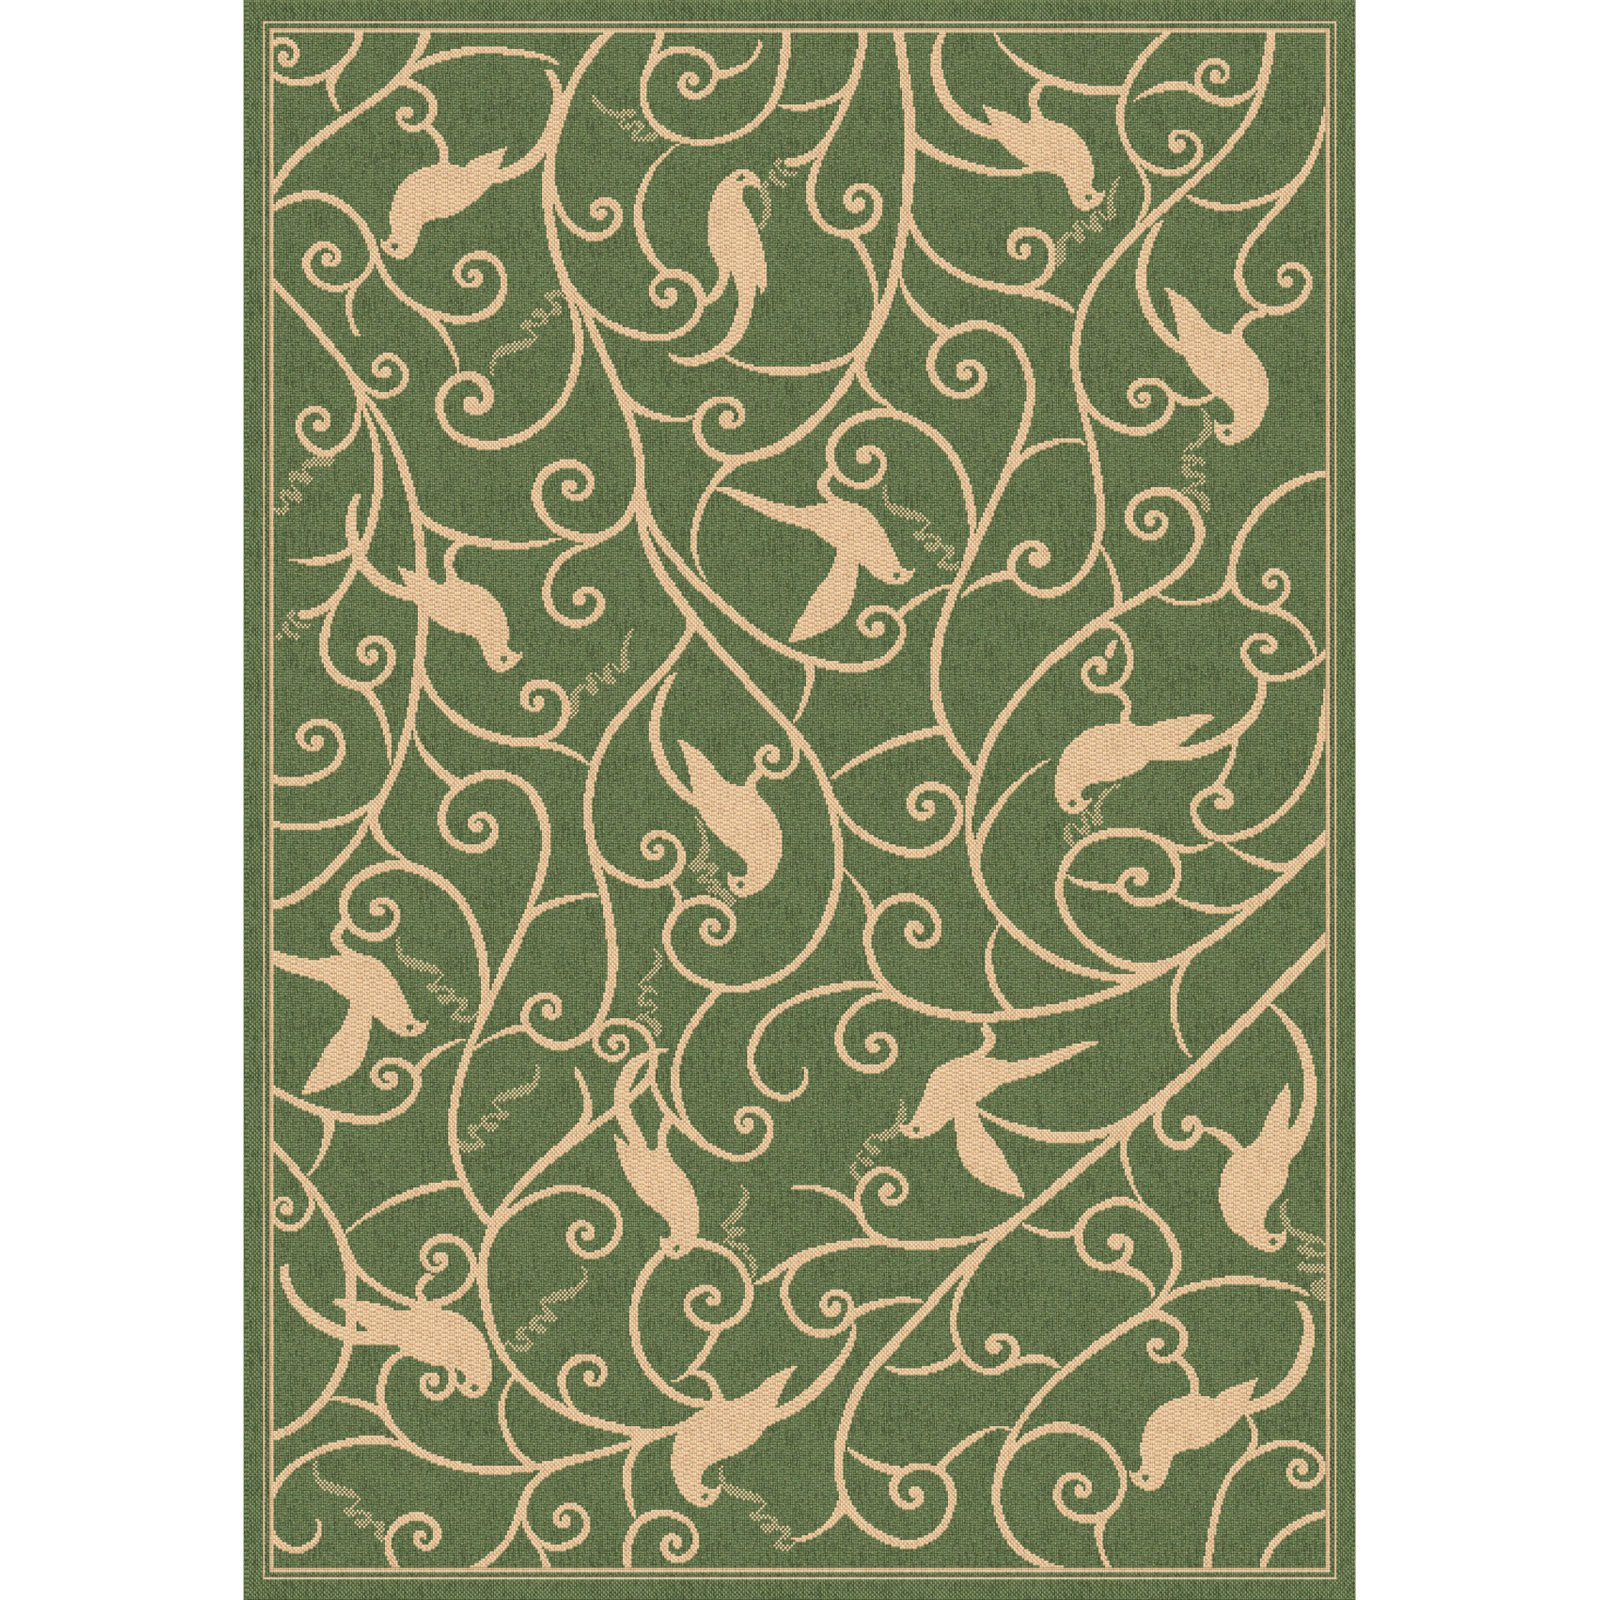 Dynamic Rugs Piazza Partridge Indoor/Outdoor Area Rug - Green